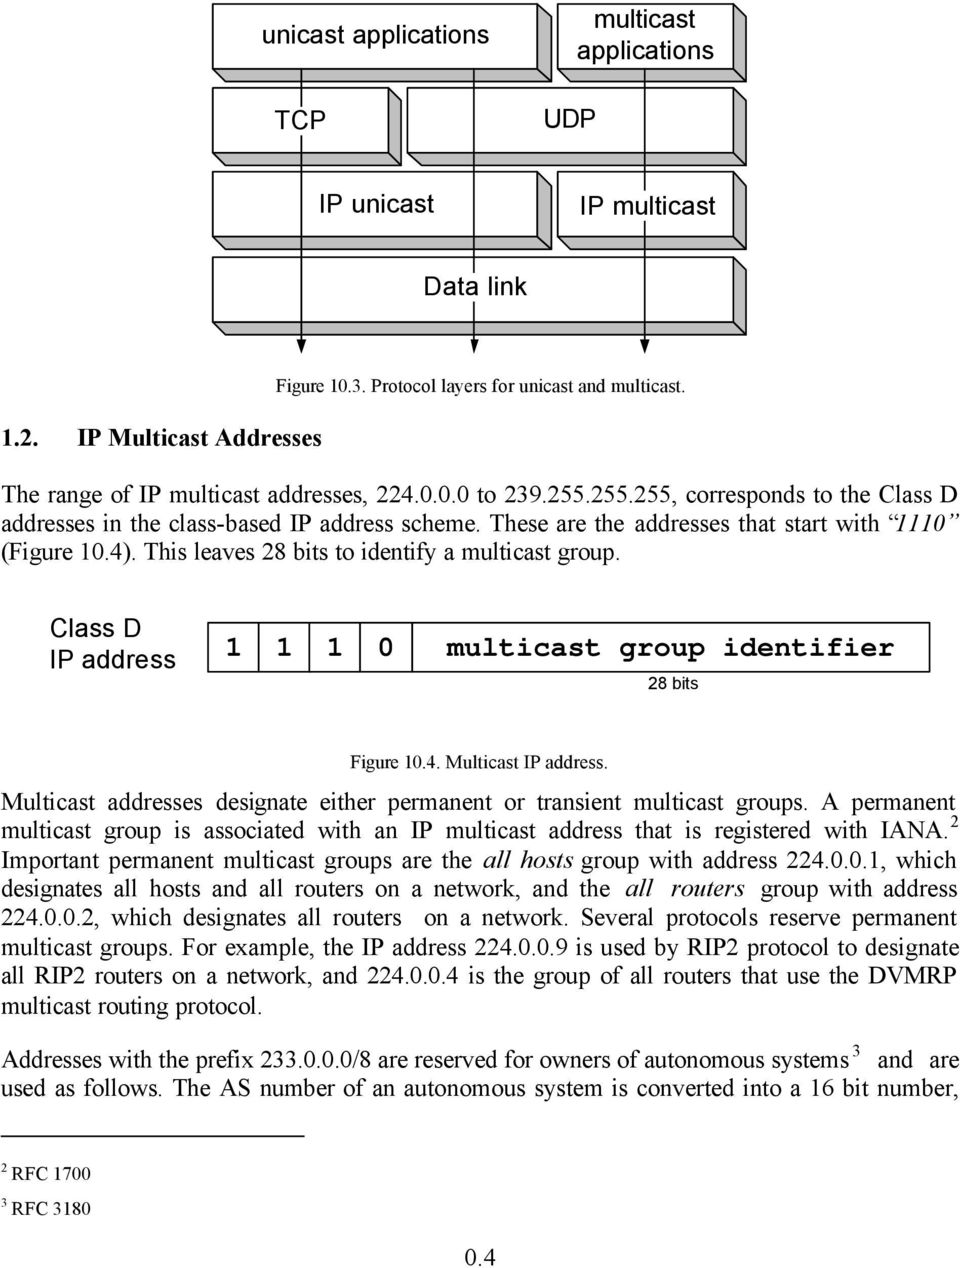 CHAPTER 10 IP MULTICAST - PDF